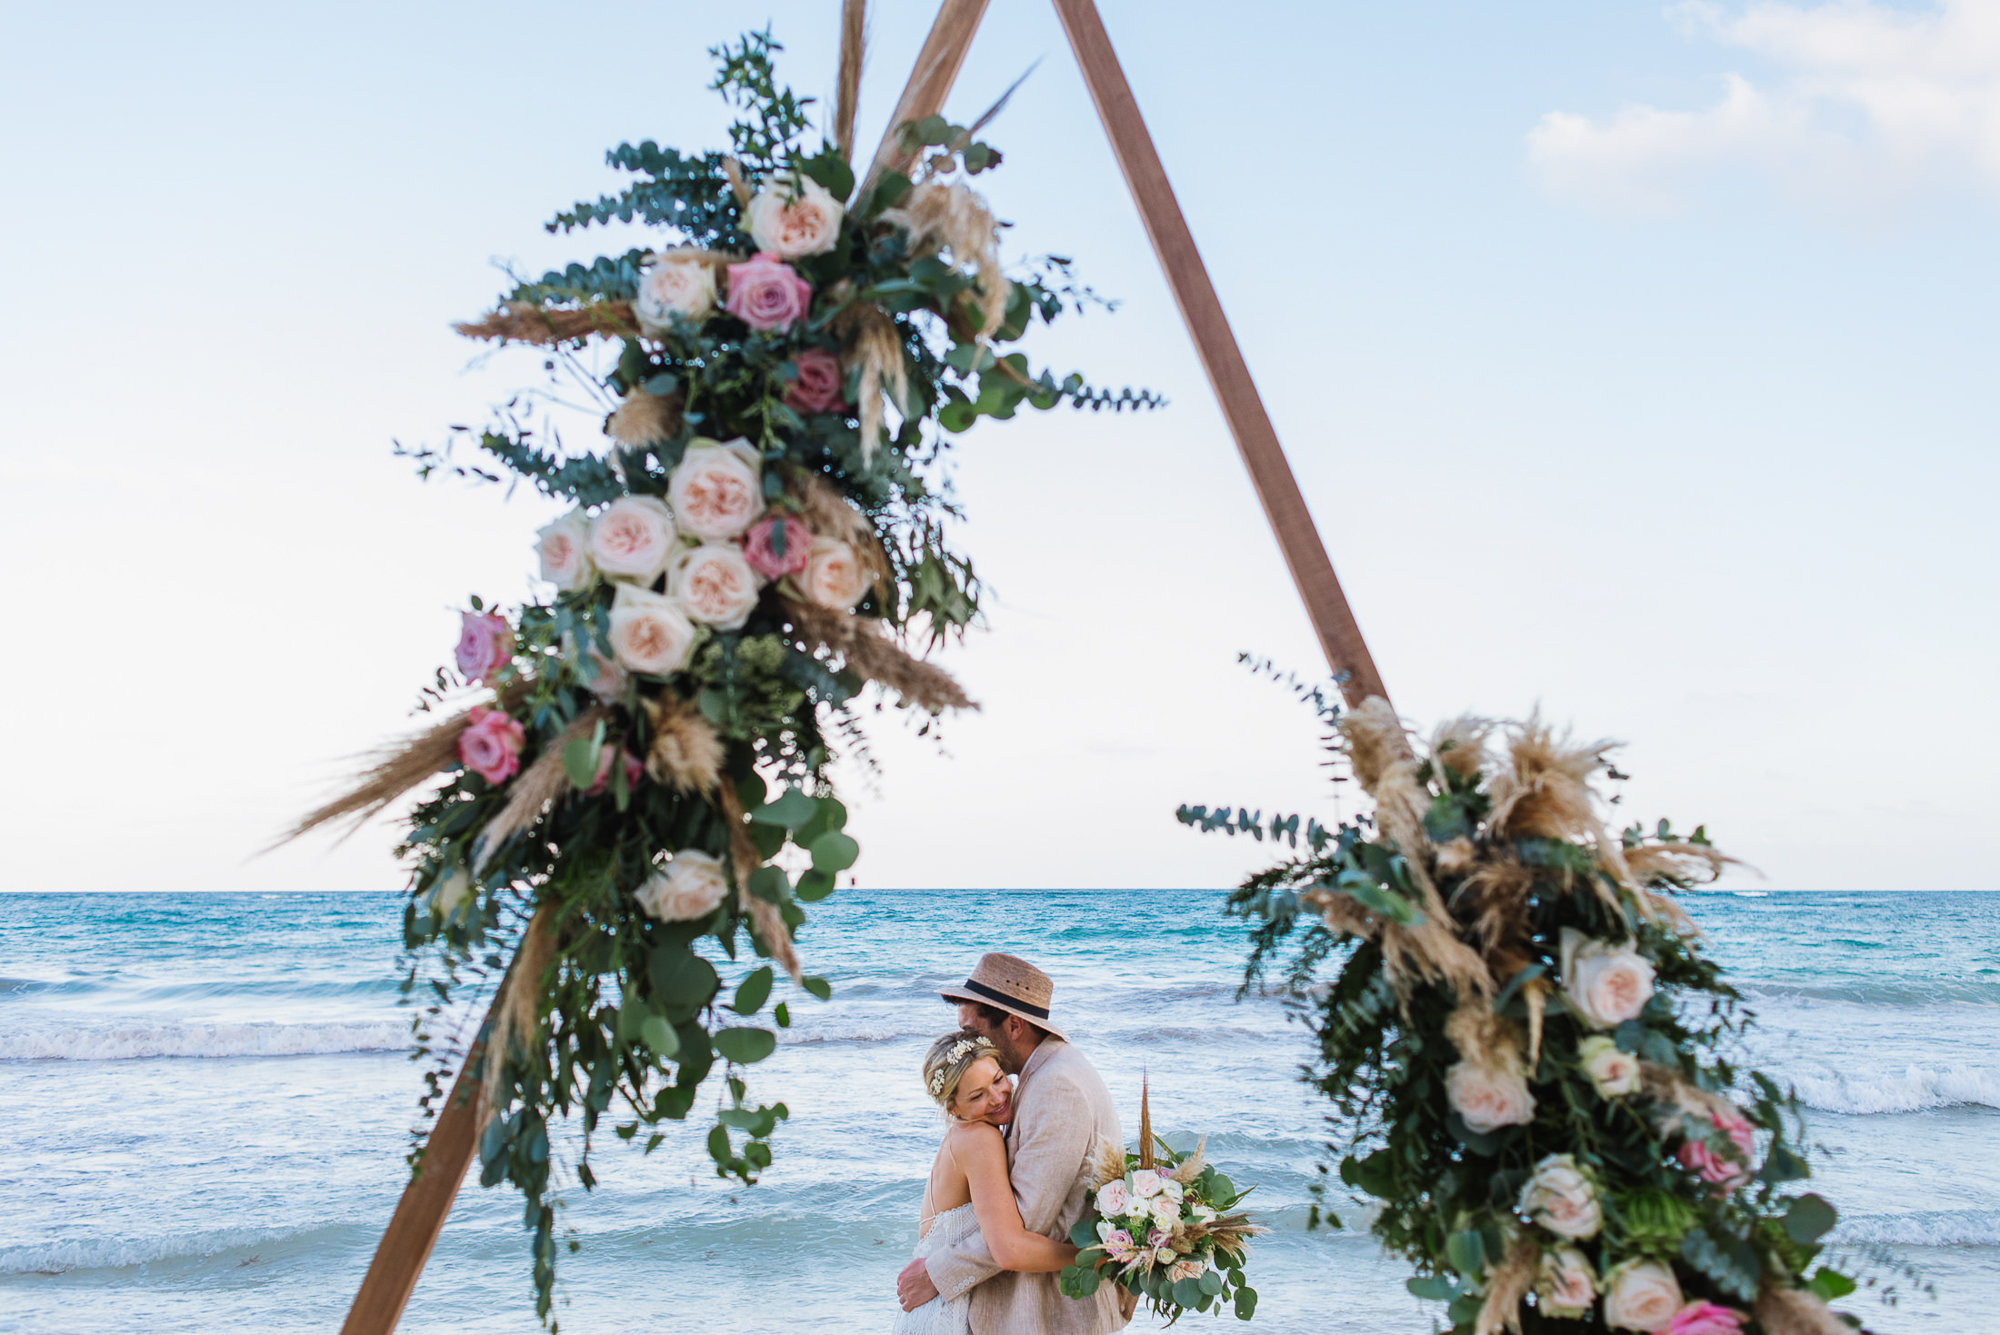 Newlyweds hug with triangle arbor in foreground, by Citlalli Rico